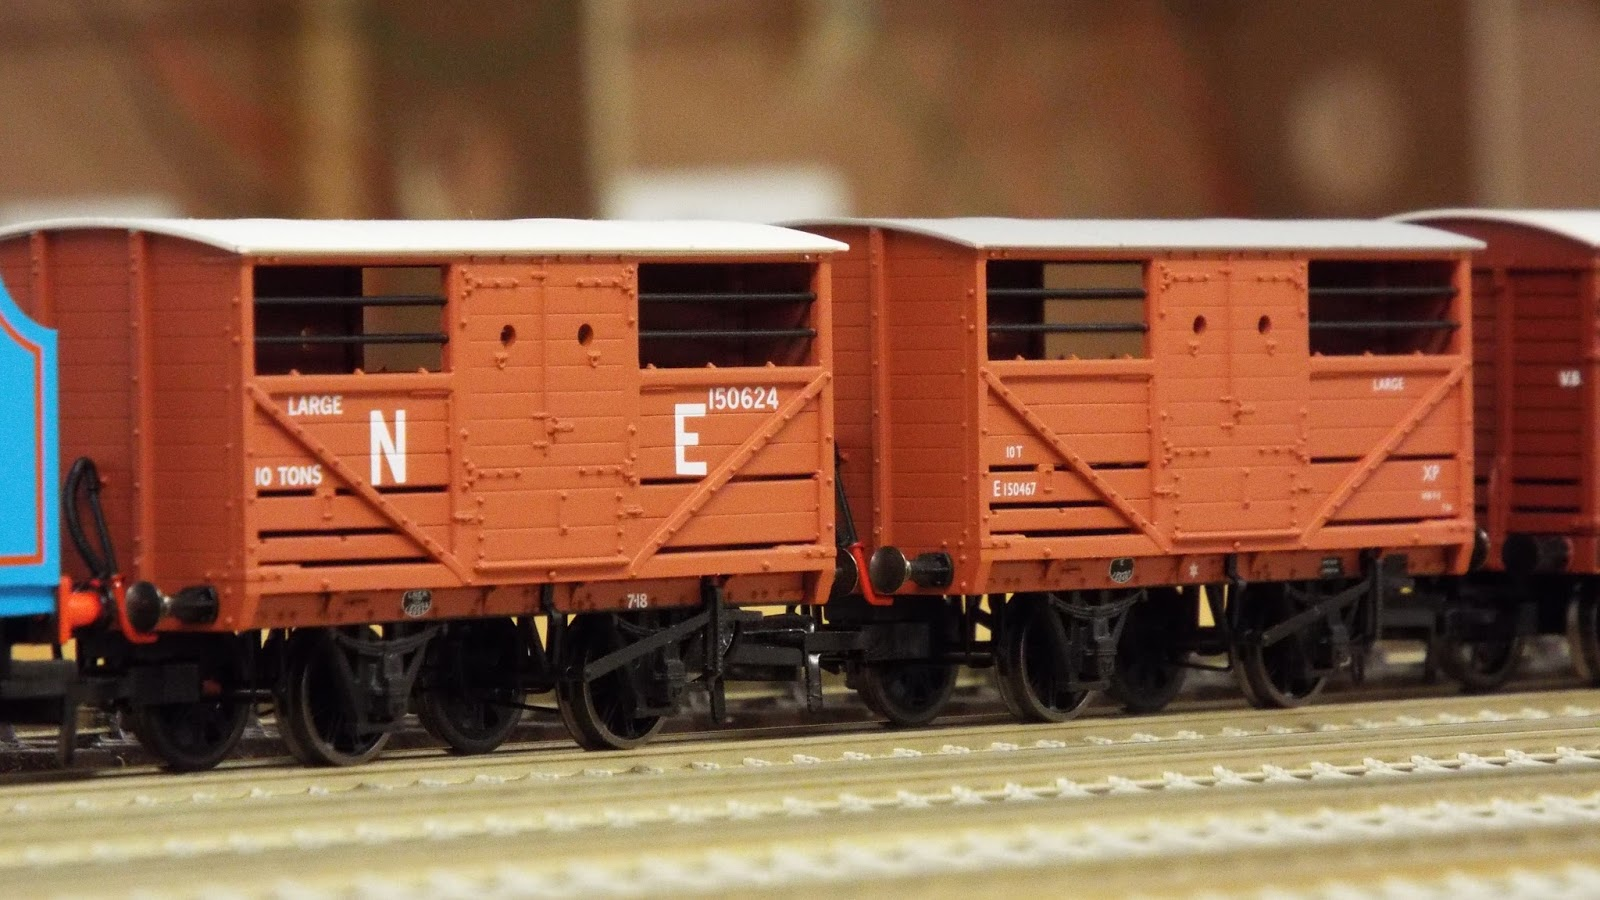 The British Railway Stories Ltd Oxford Rail Lner Cattle Wagon Review Bachmann Track Switch Wiring Schematic These Wagons Though Comparatively Rare Throughout Their Years In Comparison To Either Lms Or Southern And Later Br Variants Will Look A Good